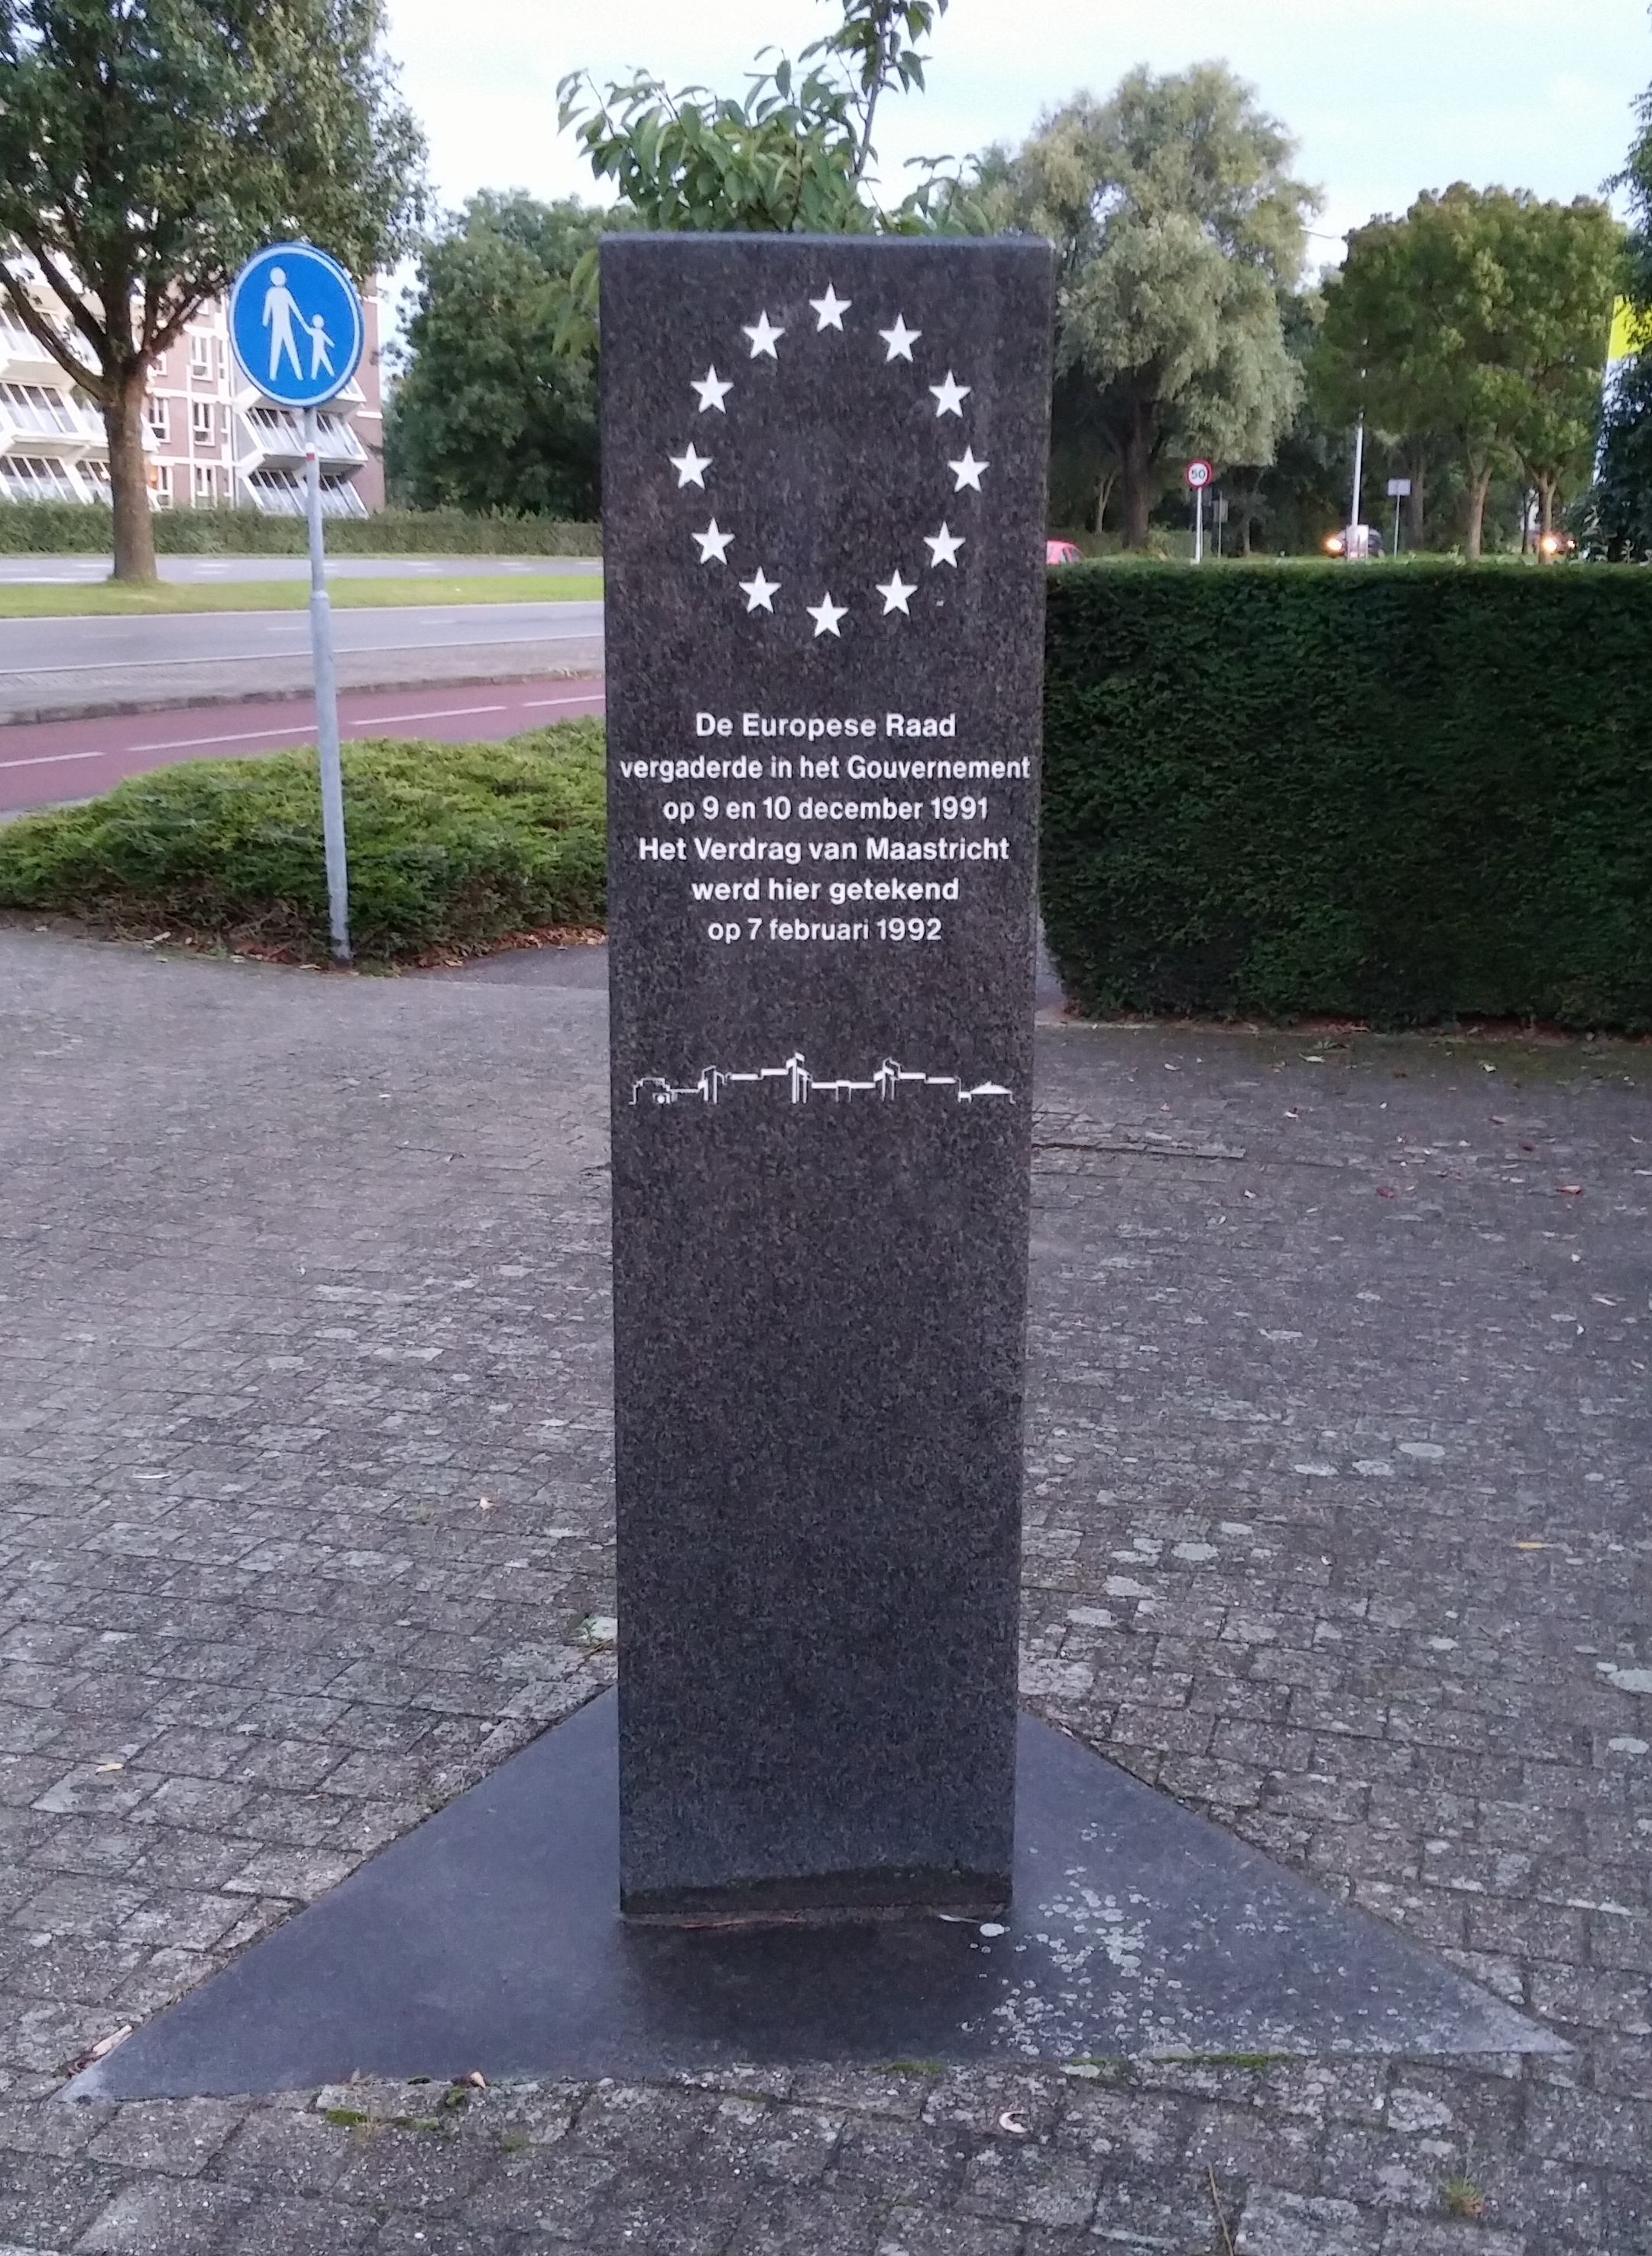 the treaty of maastricht Under the heading of the maastricht treaty on wikipedia, it gives this explanation about the imprtance of this treatythe treaty led to the.